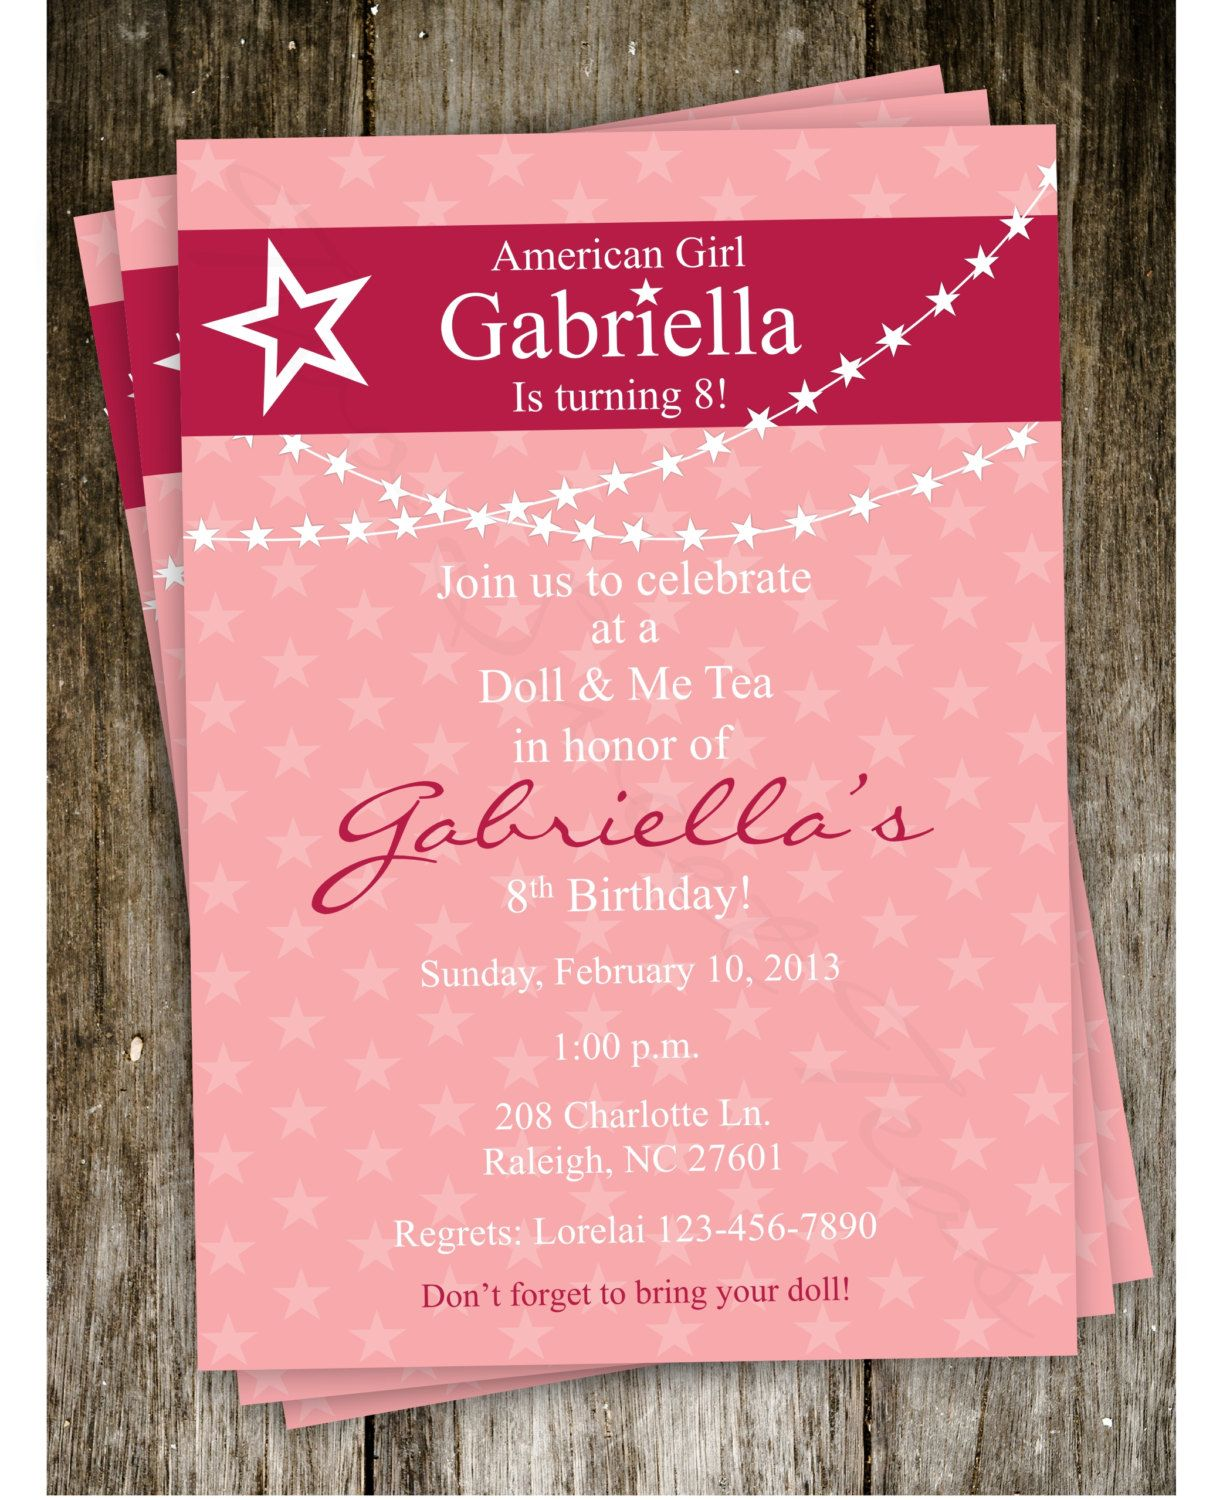 Free American Girl Party Invitations Printable